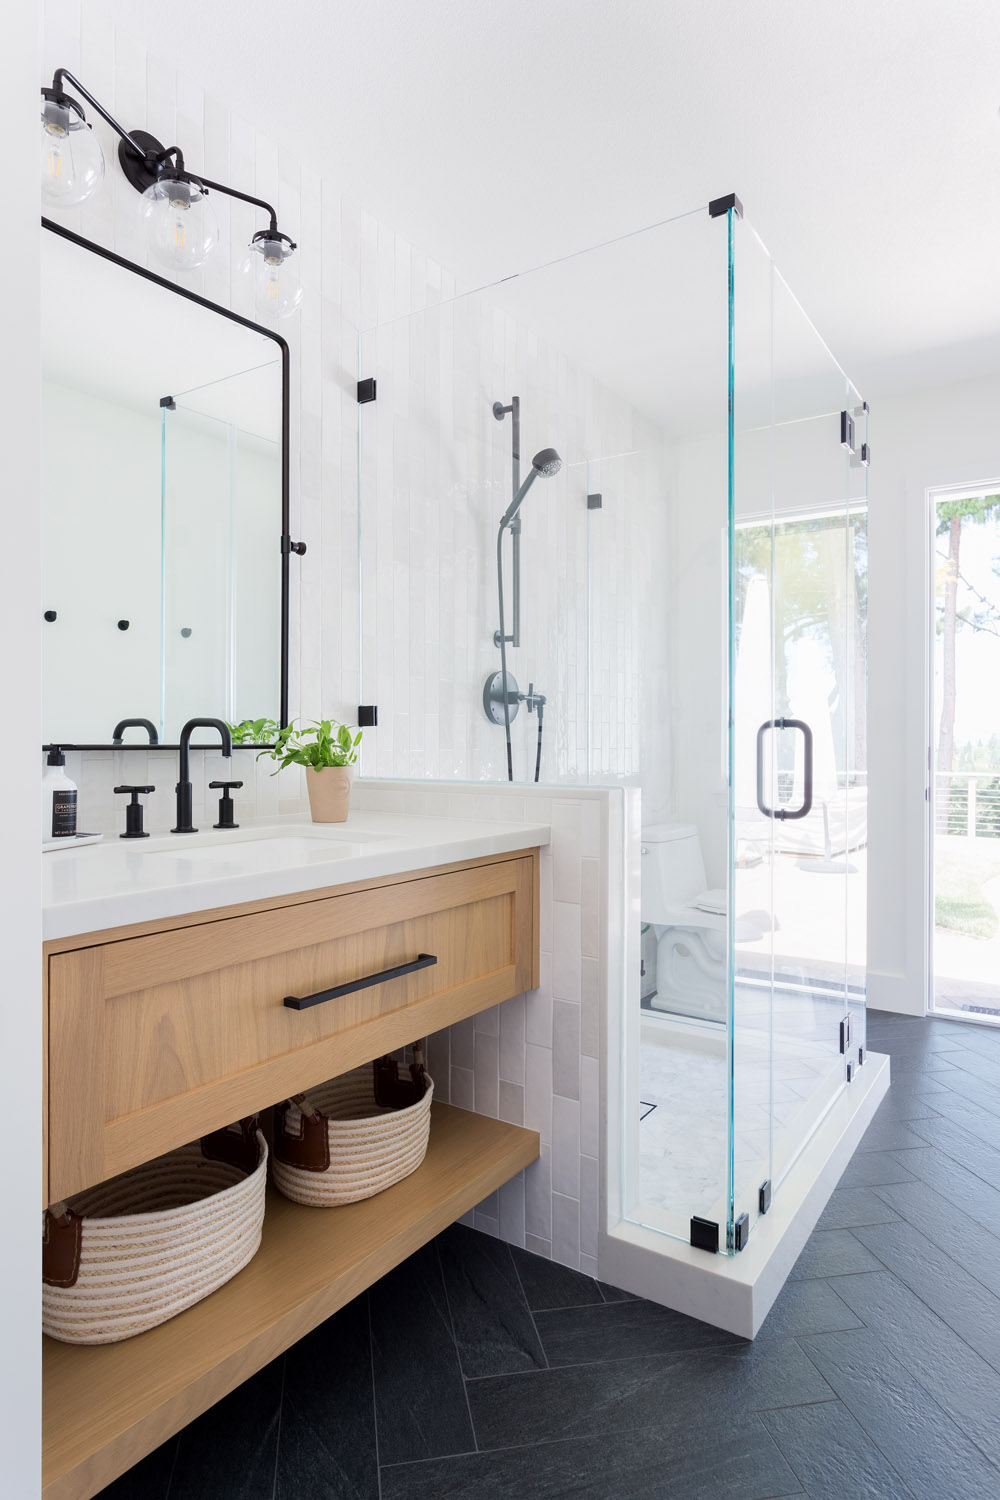 A Bright And Functional Renovation For A Young Bay Area Family Rue Bathroom Remodel Master Master Bathroom Renovation Bathroom Decor